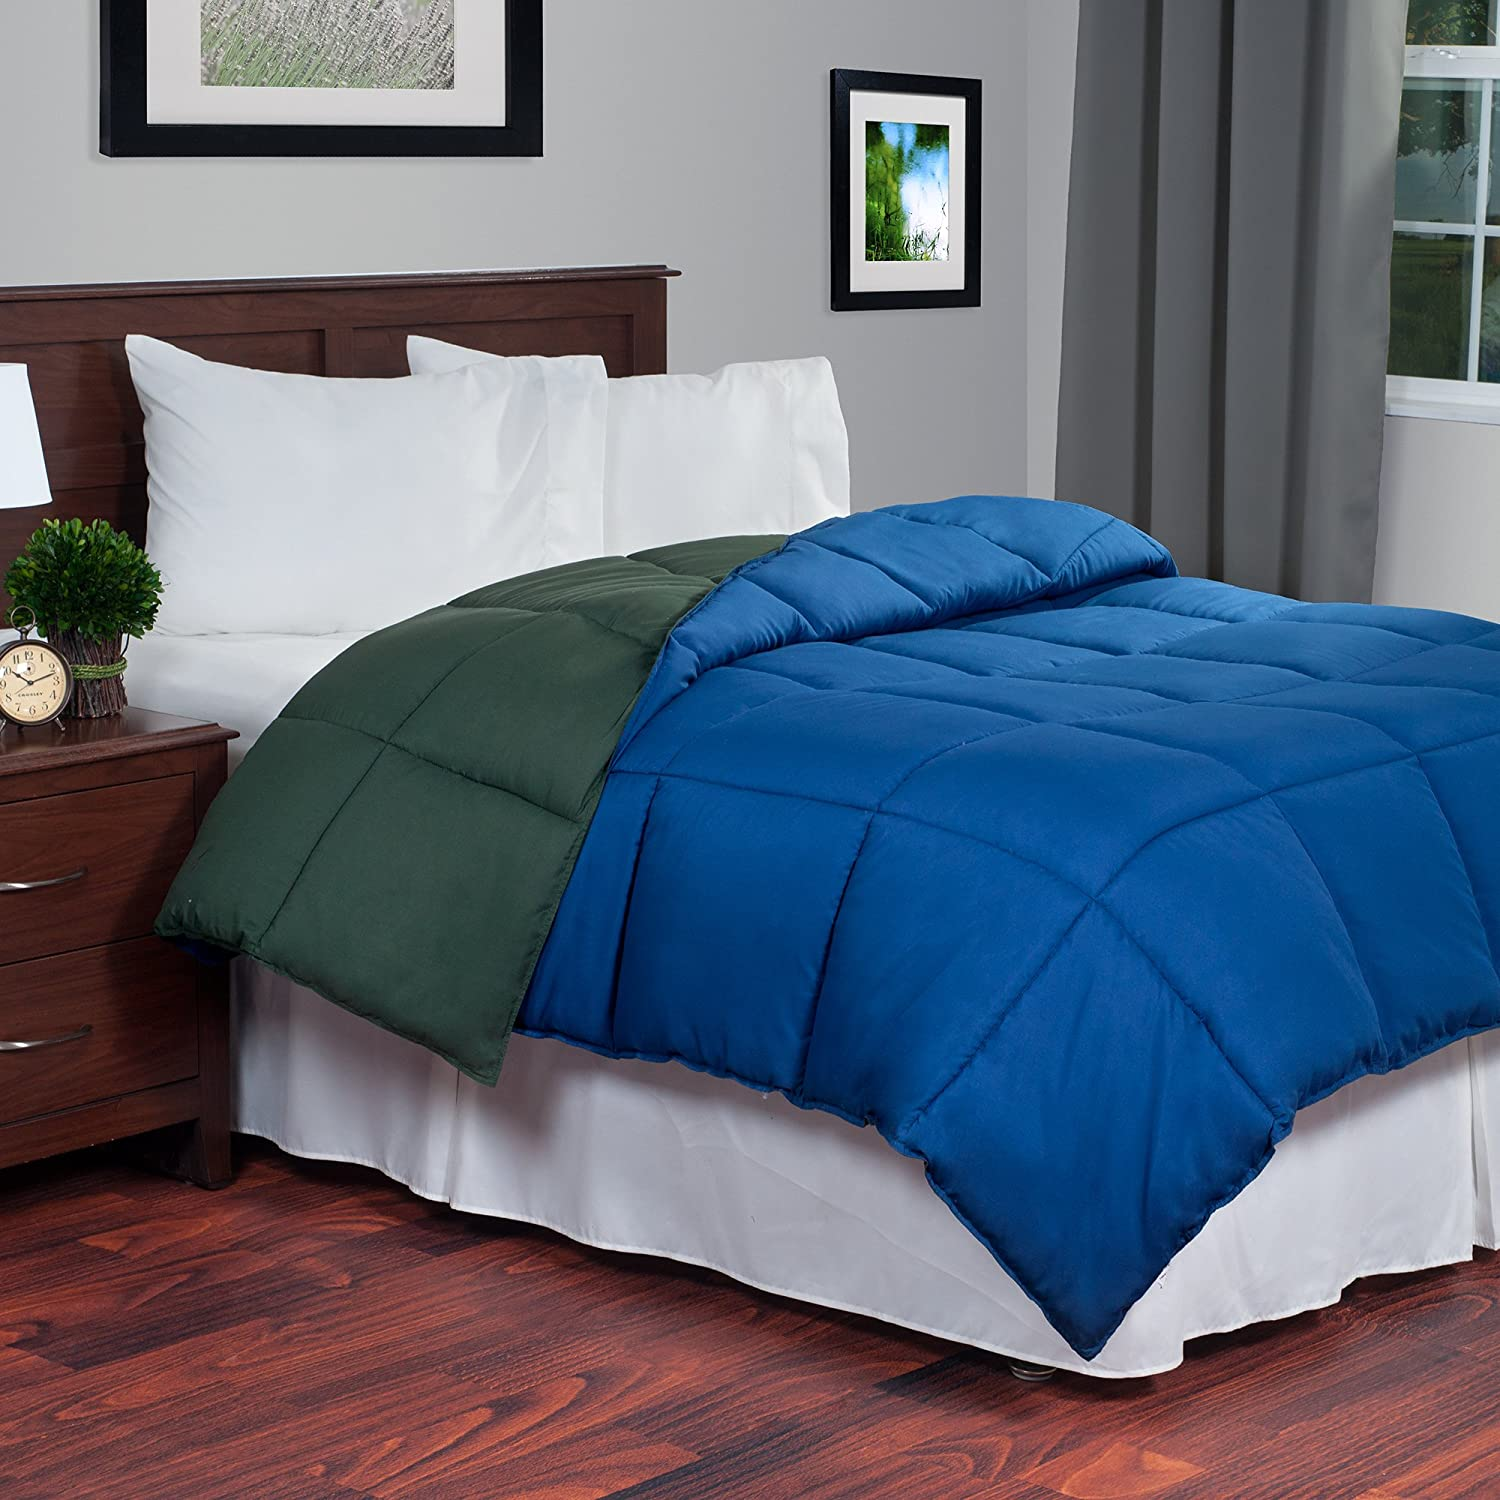 Lavish Home Reversible Down Alternative Comforter, King, Dark Green/Dark Blue 64-14-K-GN